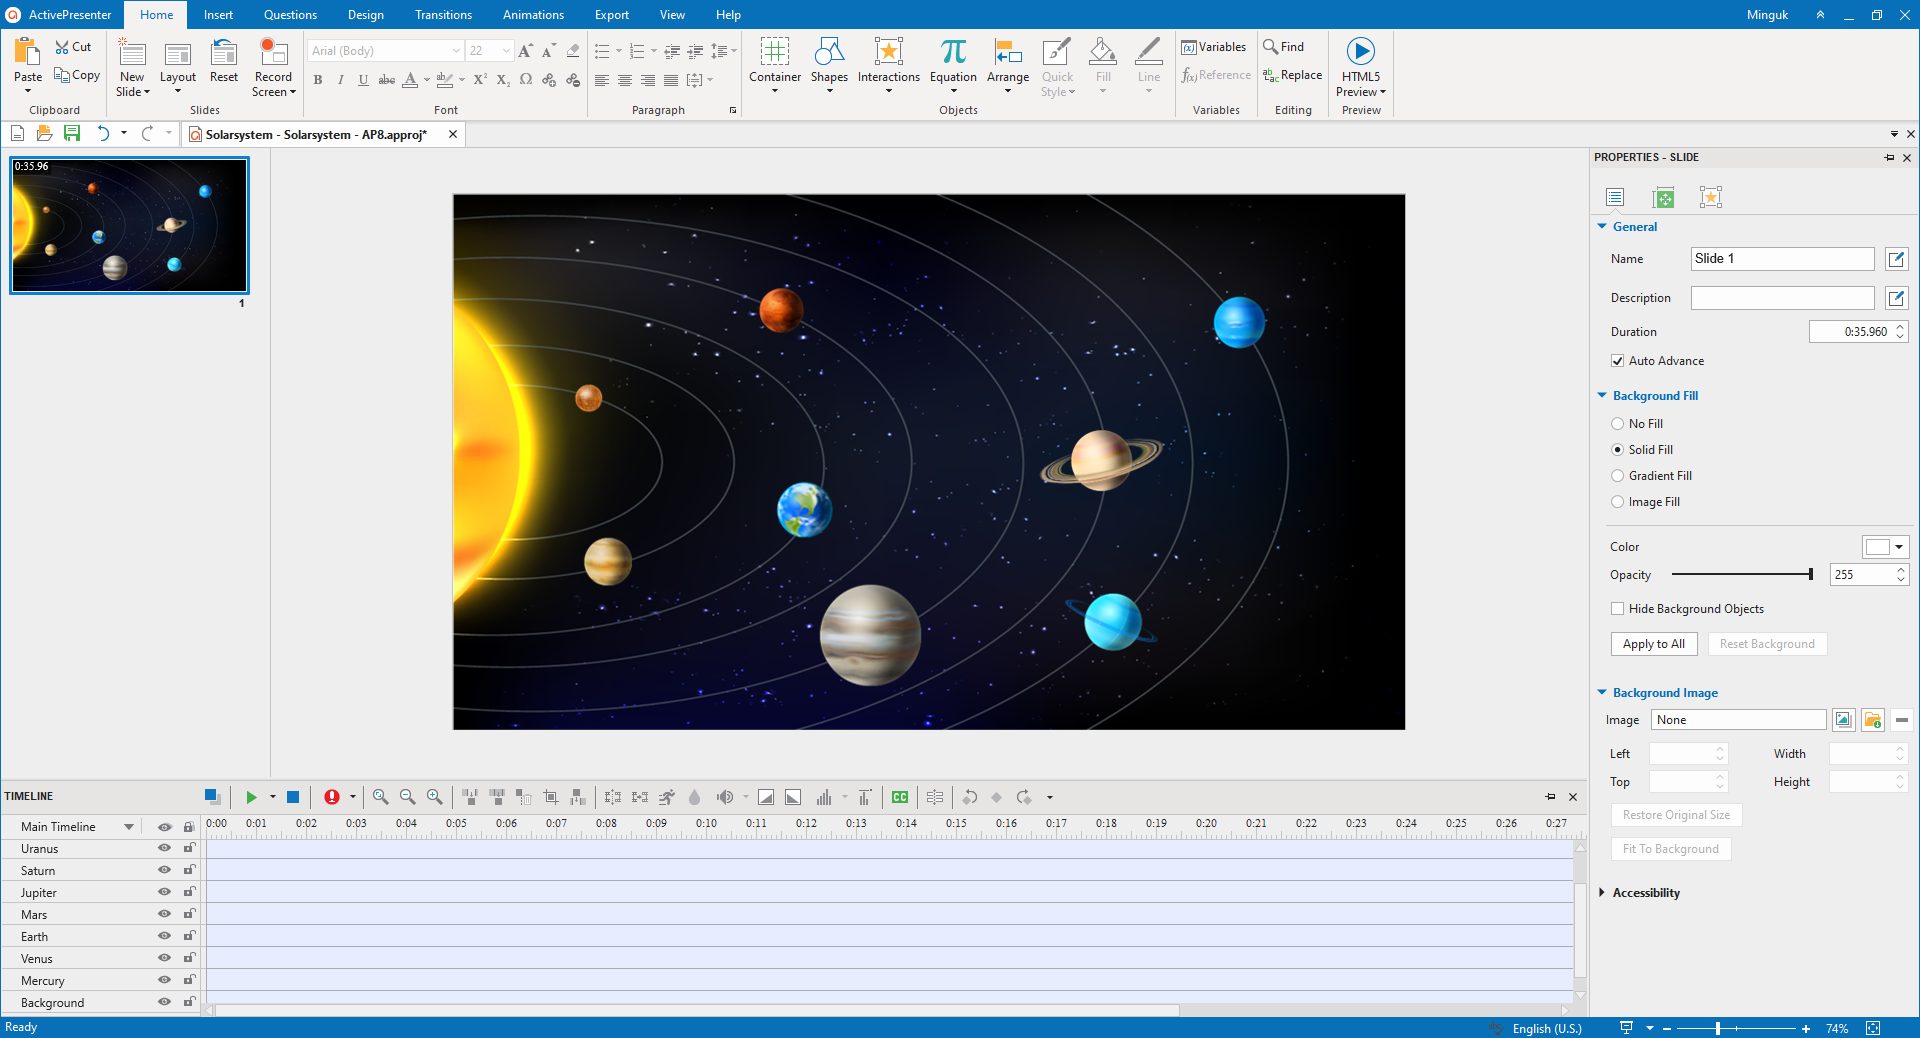 Add Planet Images to Background to create interactive images